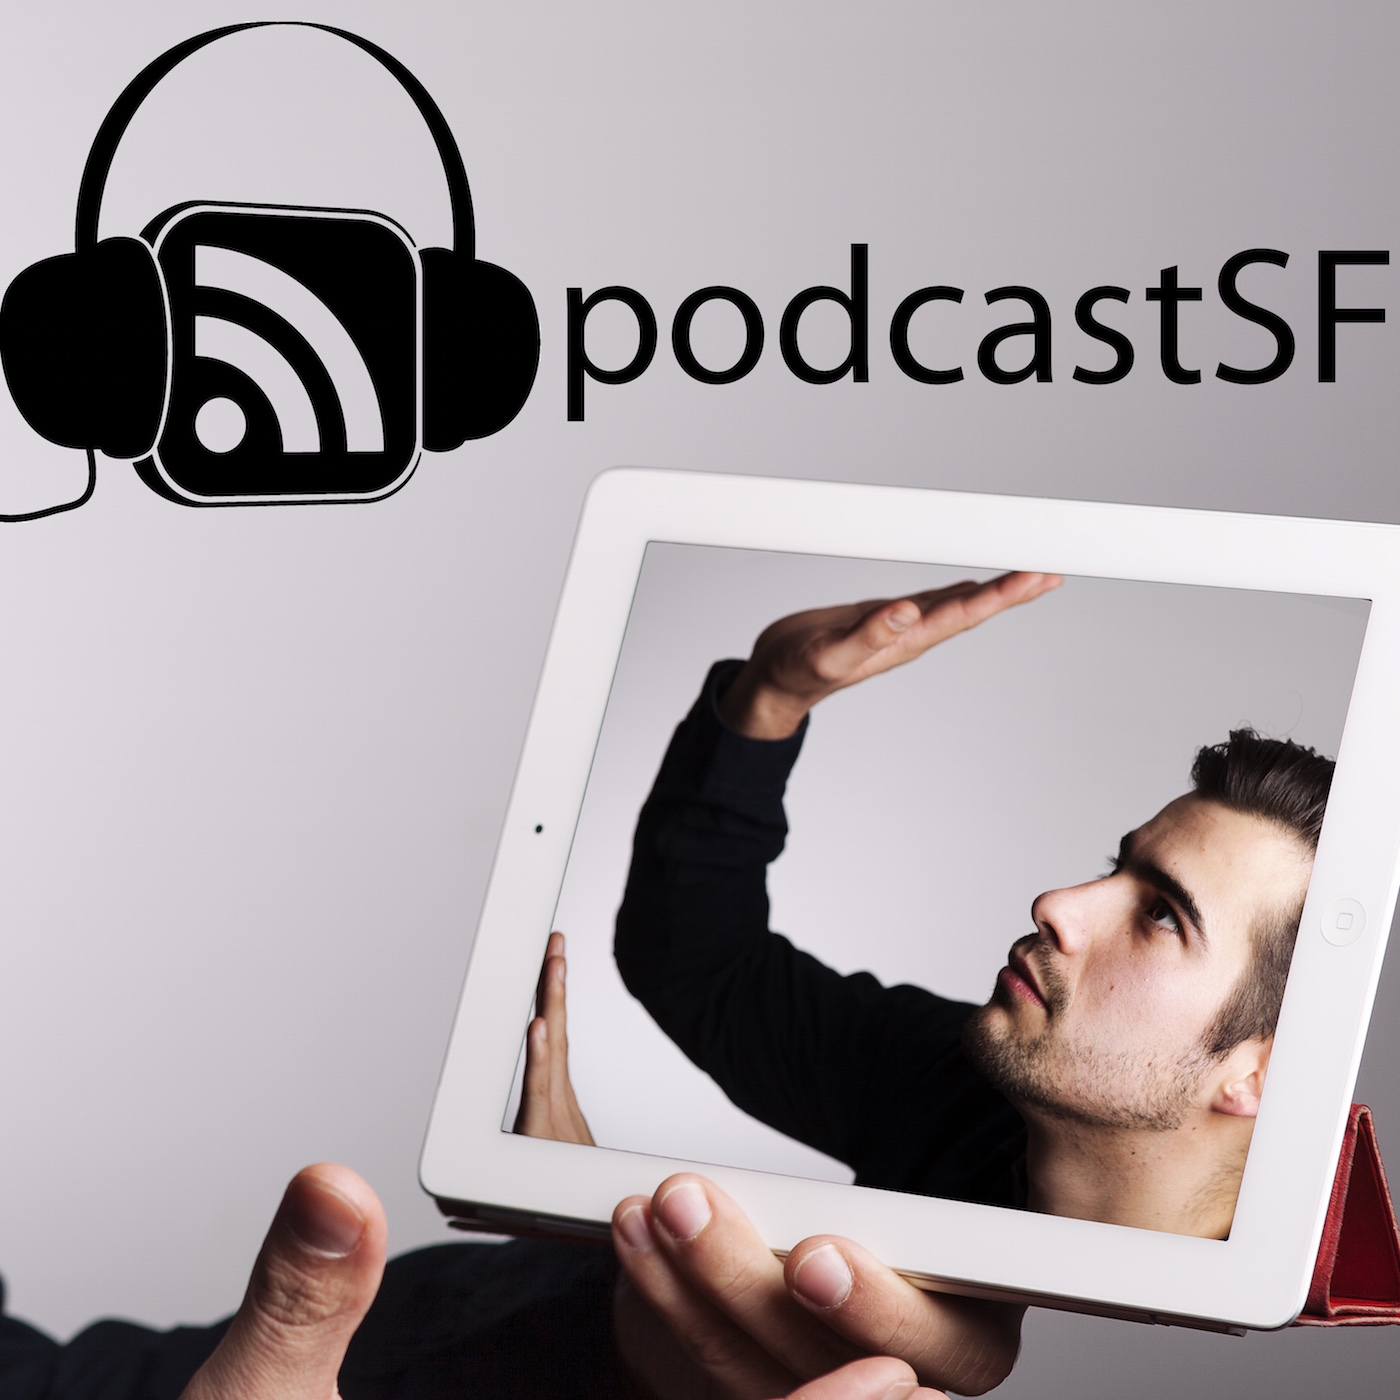 podcastSF